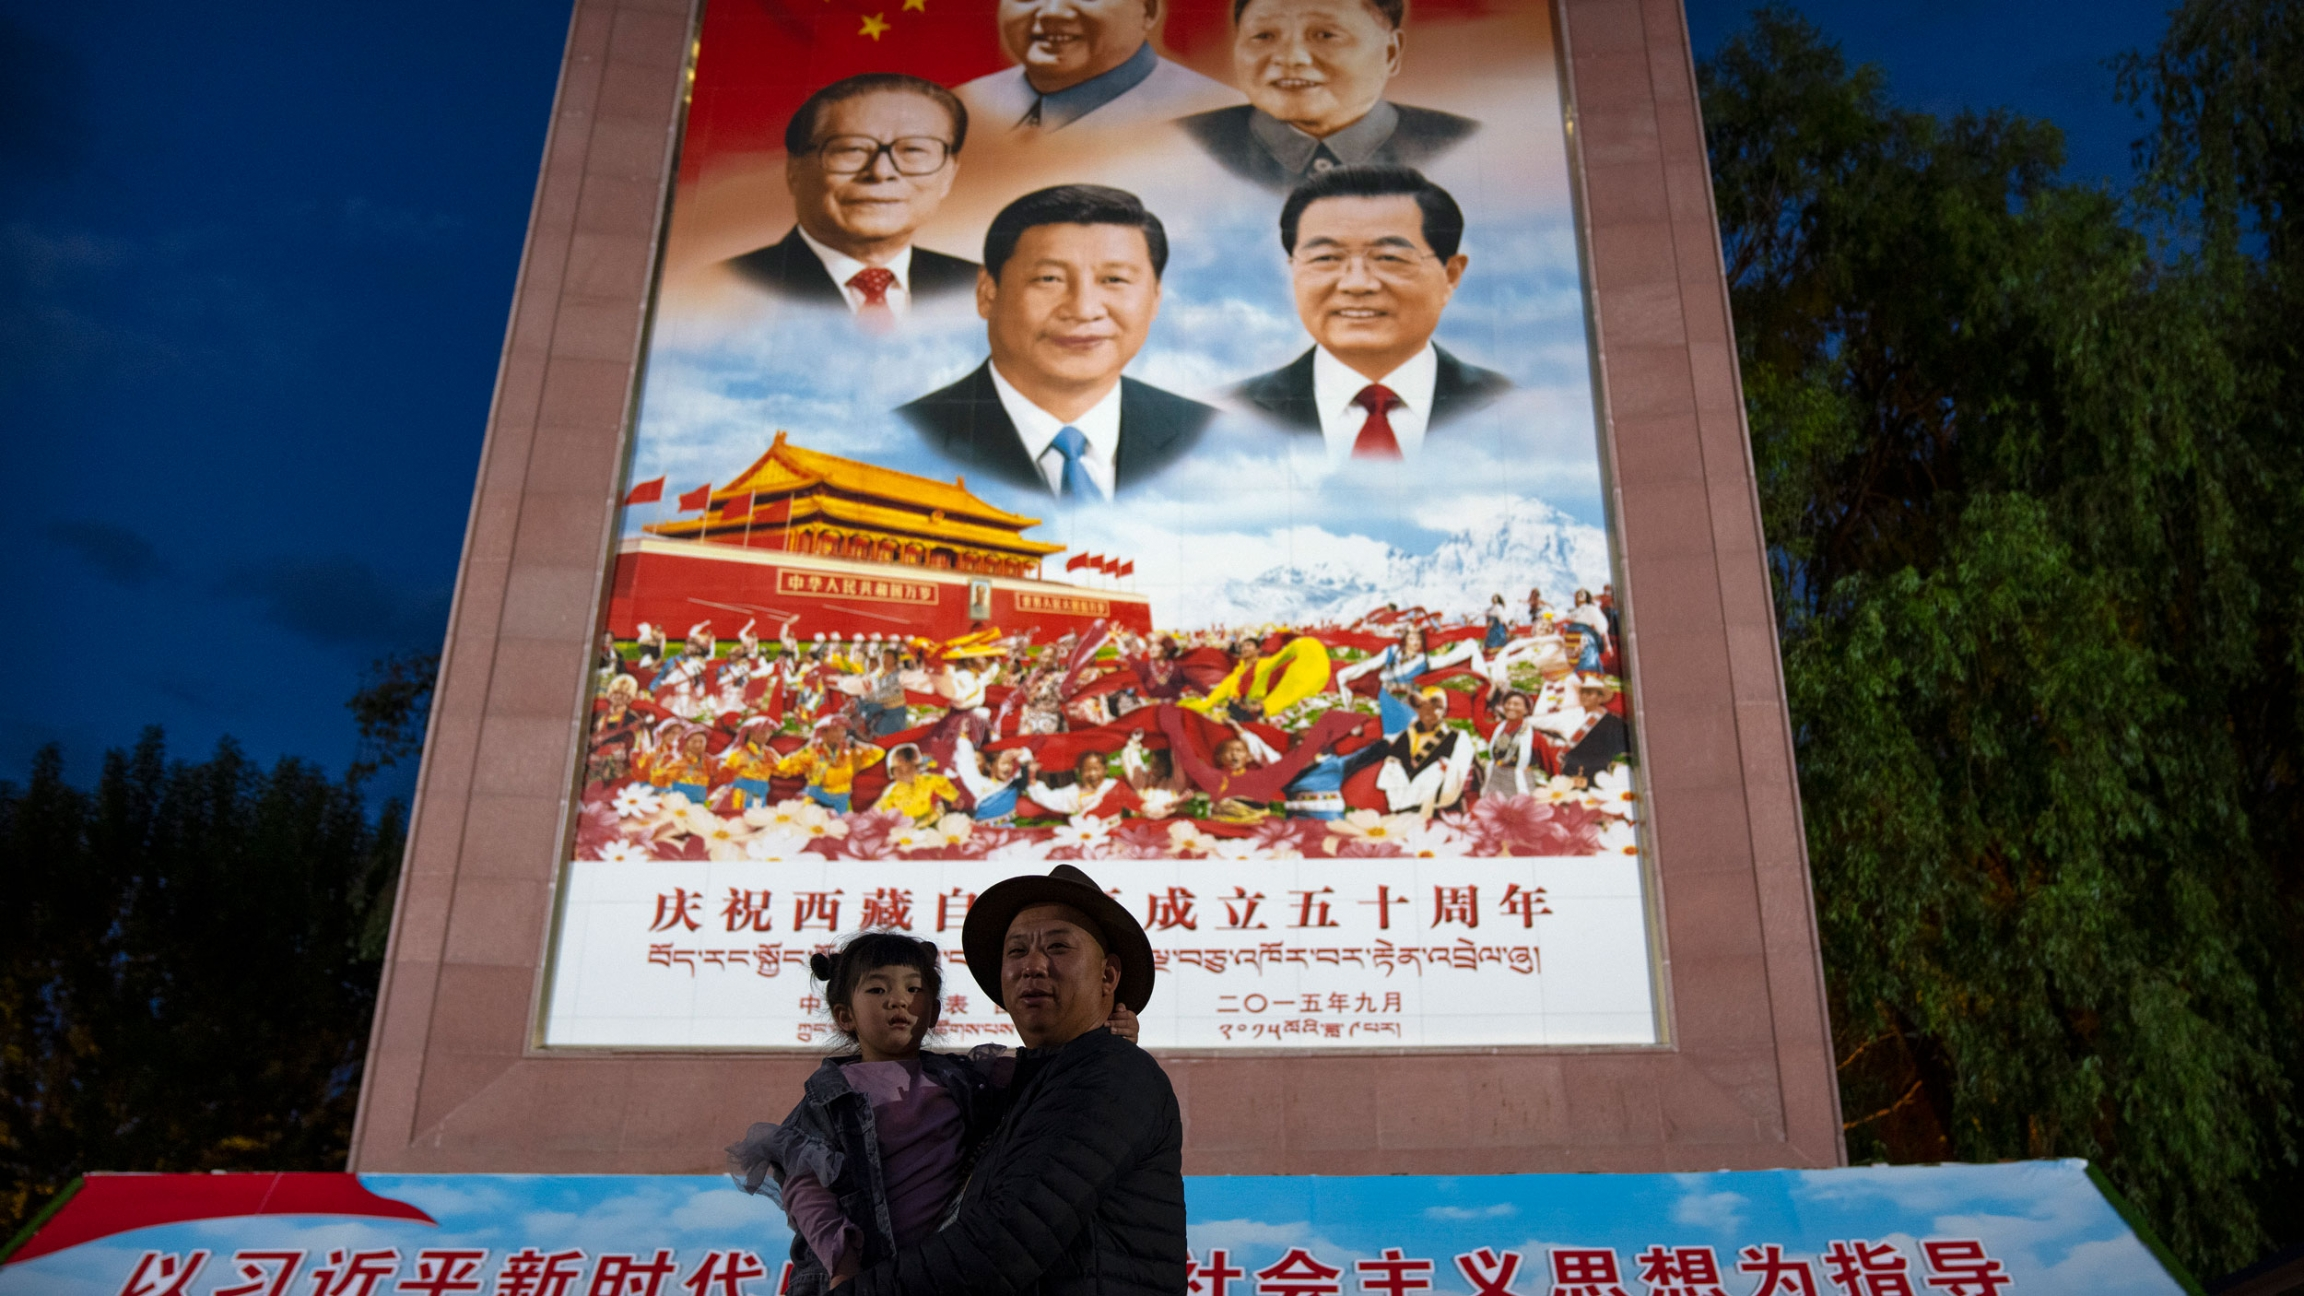 A man holds a girl as they pose for a photo in front of a large mural depicting Chinese President Xi Jinping, bottom center, and other Chinese leaders at a public square at the base of the Potala Palace in Lhasa in western China's Tibet Autonomous Region